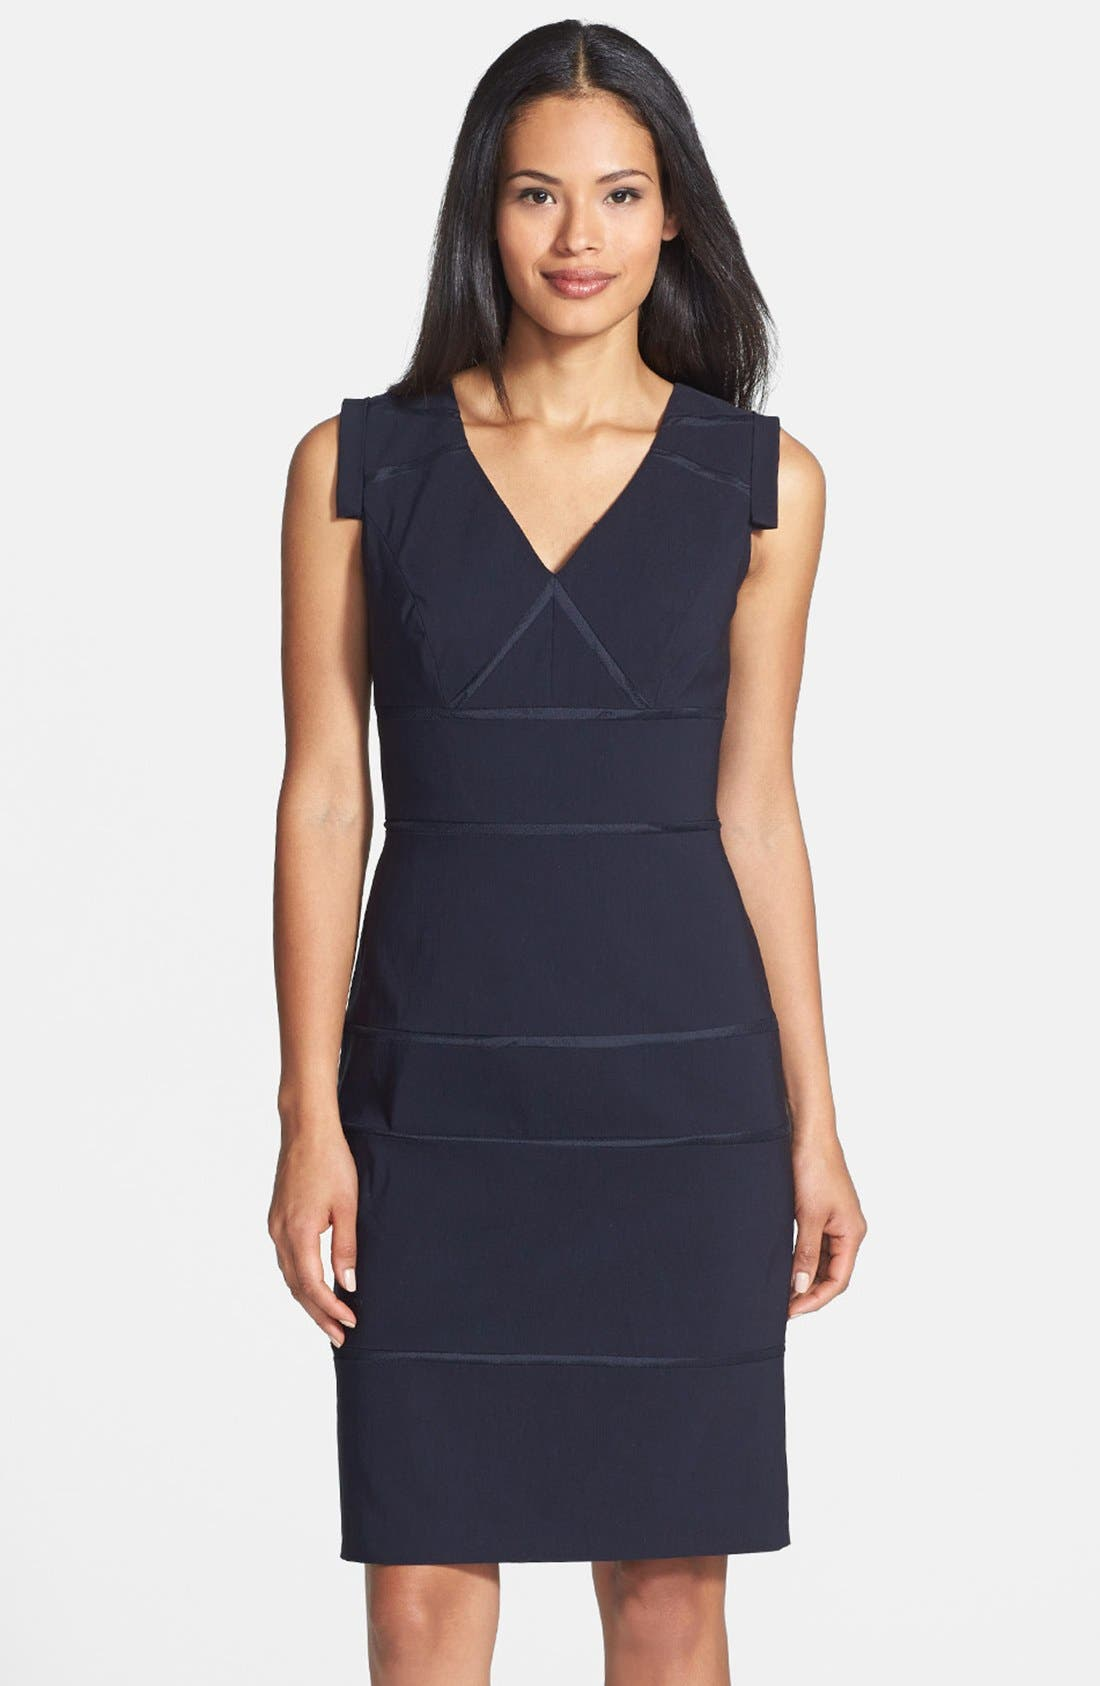 Alternate Image 1 Selected - Adrianna Papell Faille Sheath Dress (Regular & Petite)